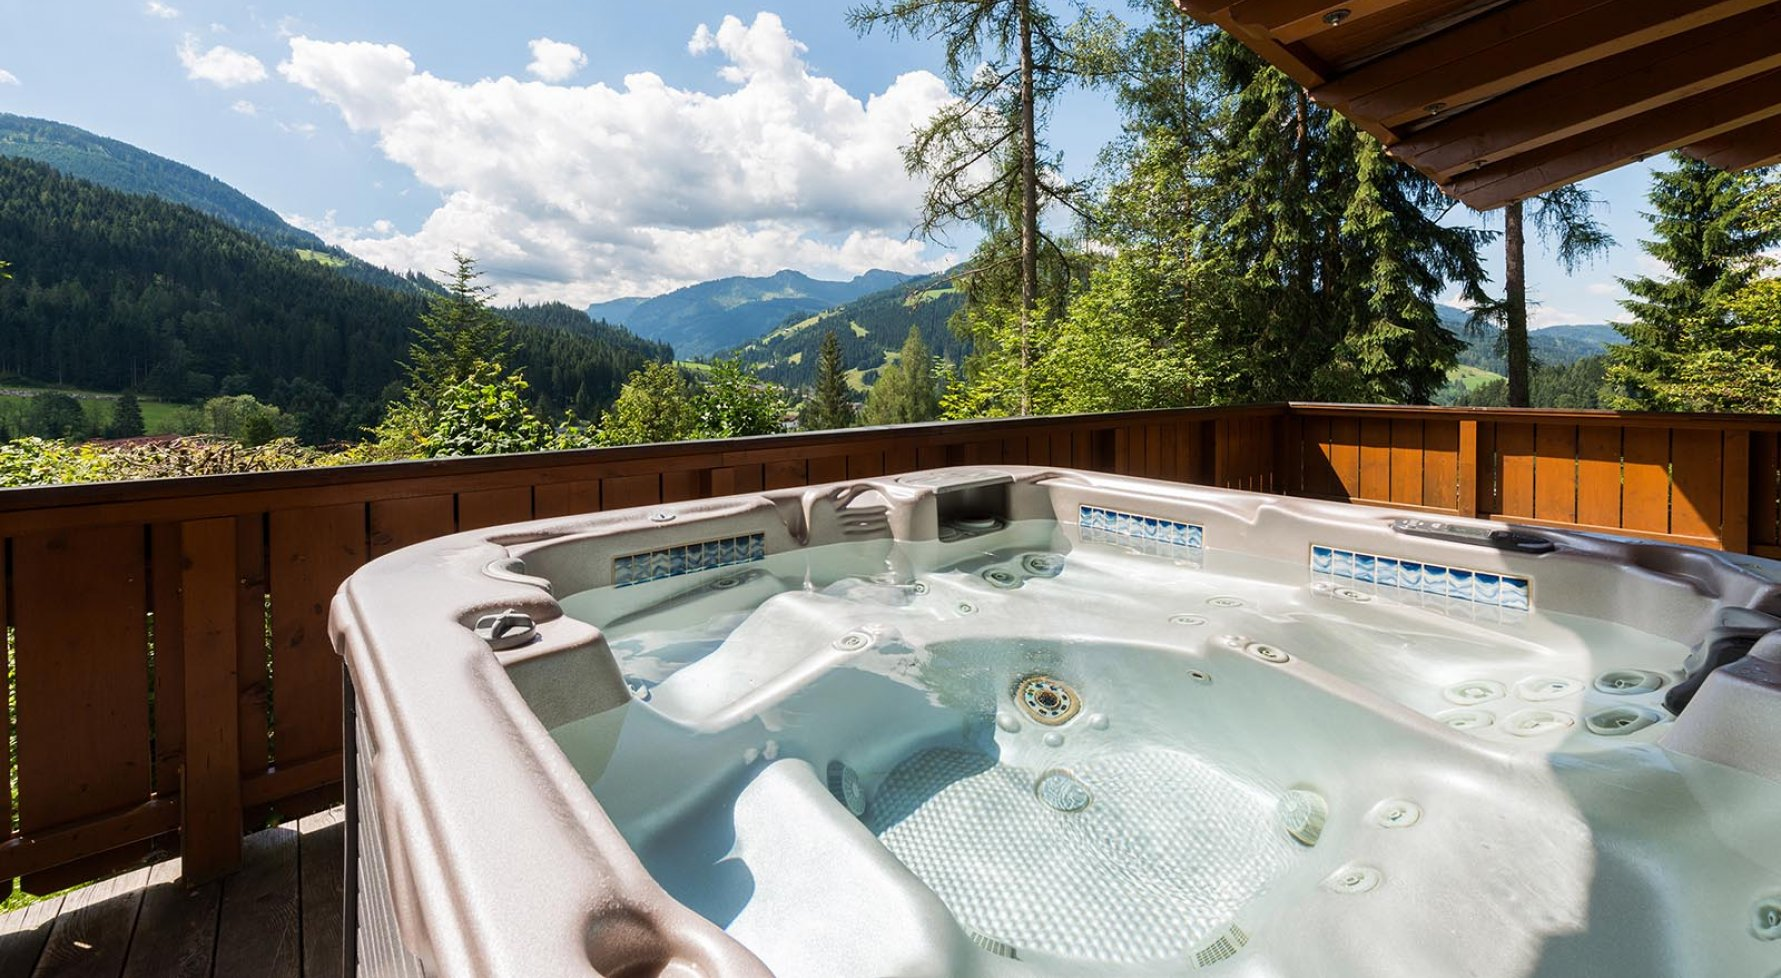 Property in 5602 Wagrain: Mountain Home Wagrain mit Einliegerapartment - picture 1